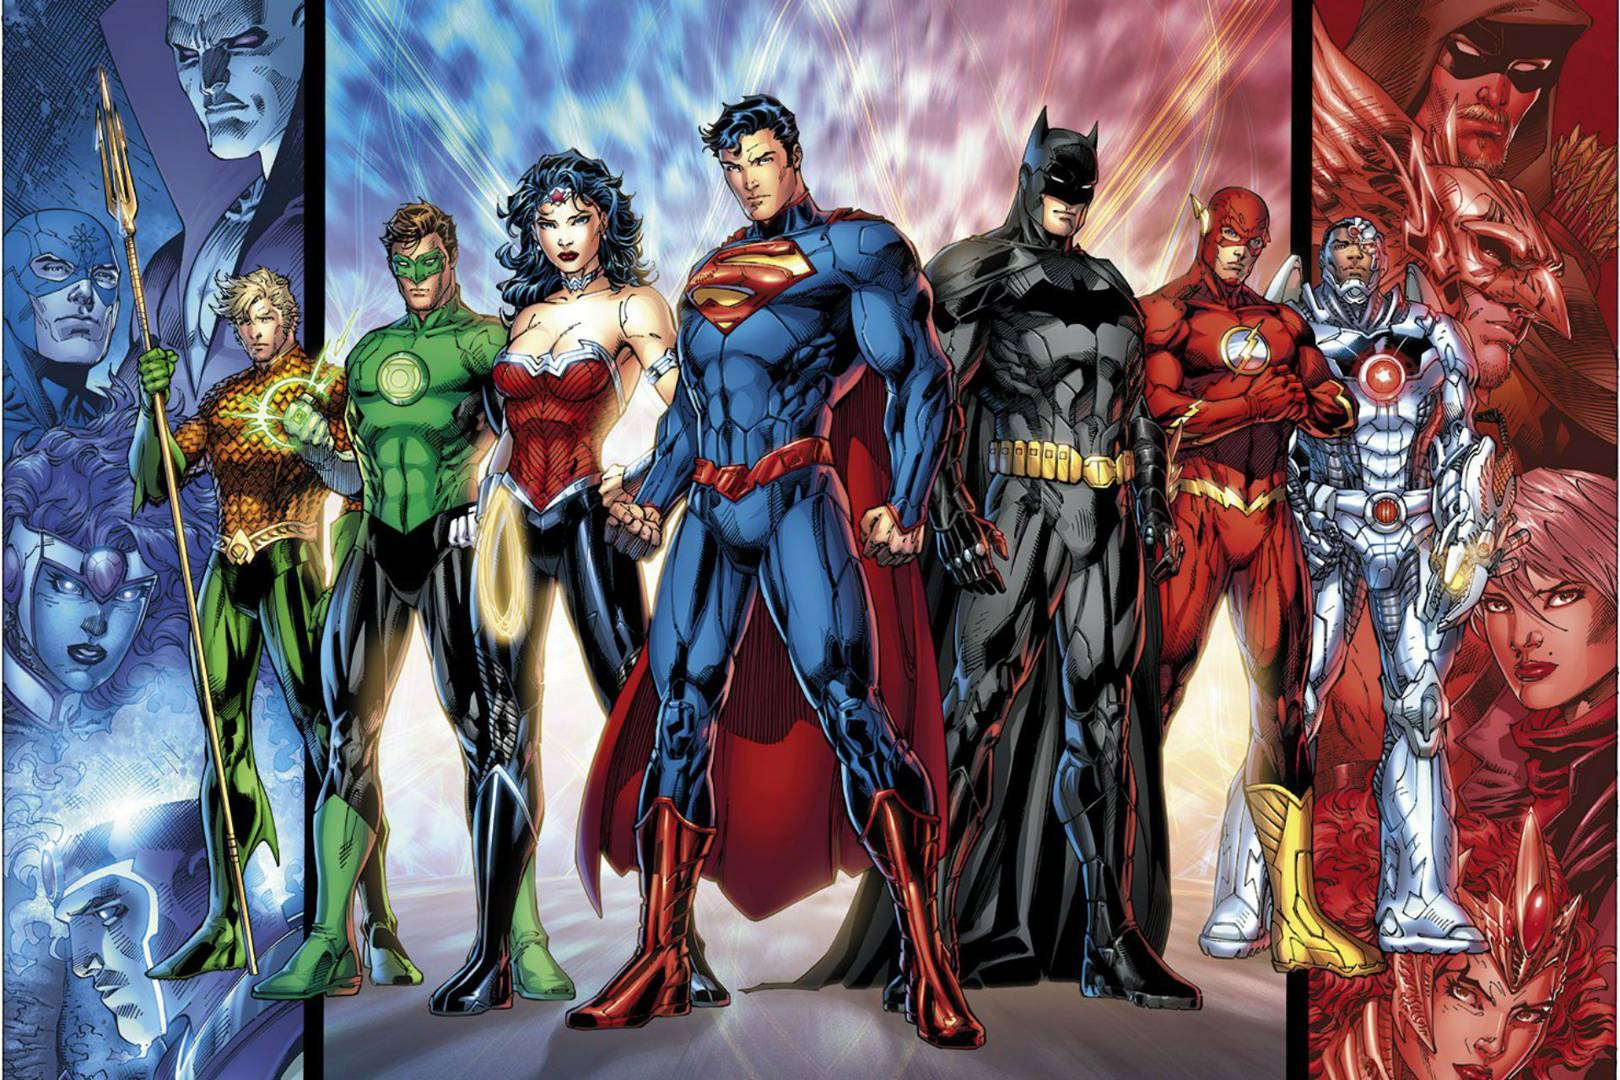 DC Comics Restores Its Superhero Legacy With DC Rebirth WIRED UK - Superheroes re imagined as if they were sponsored by big brands